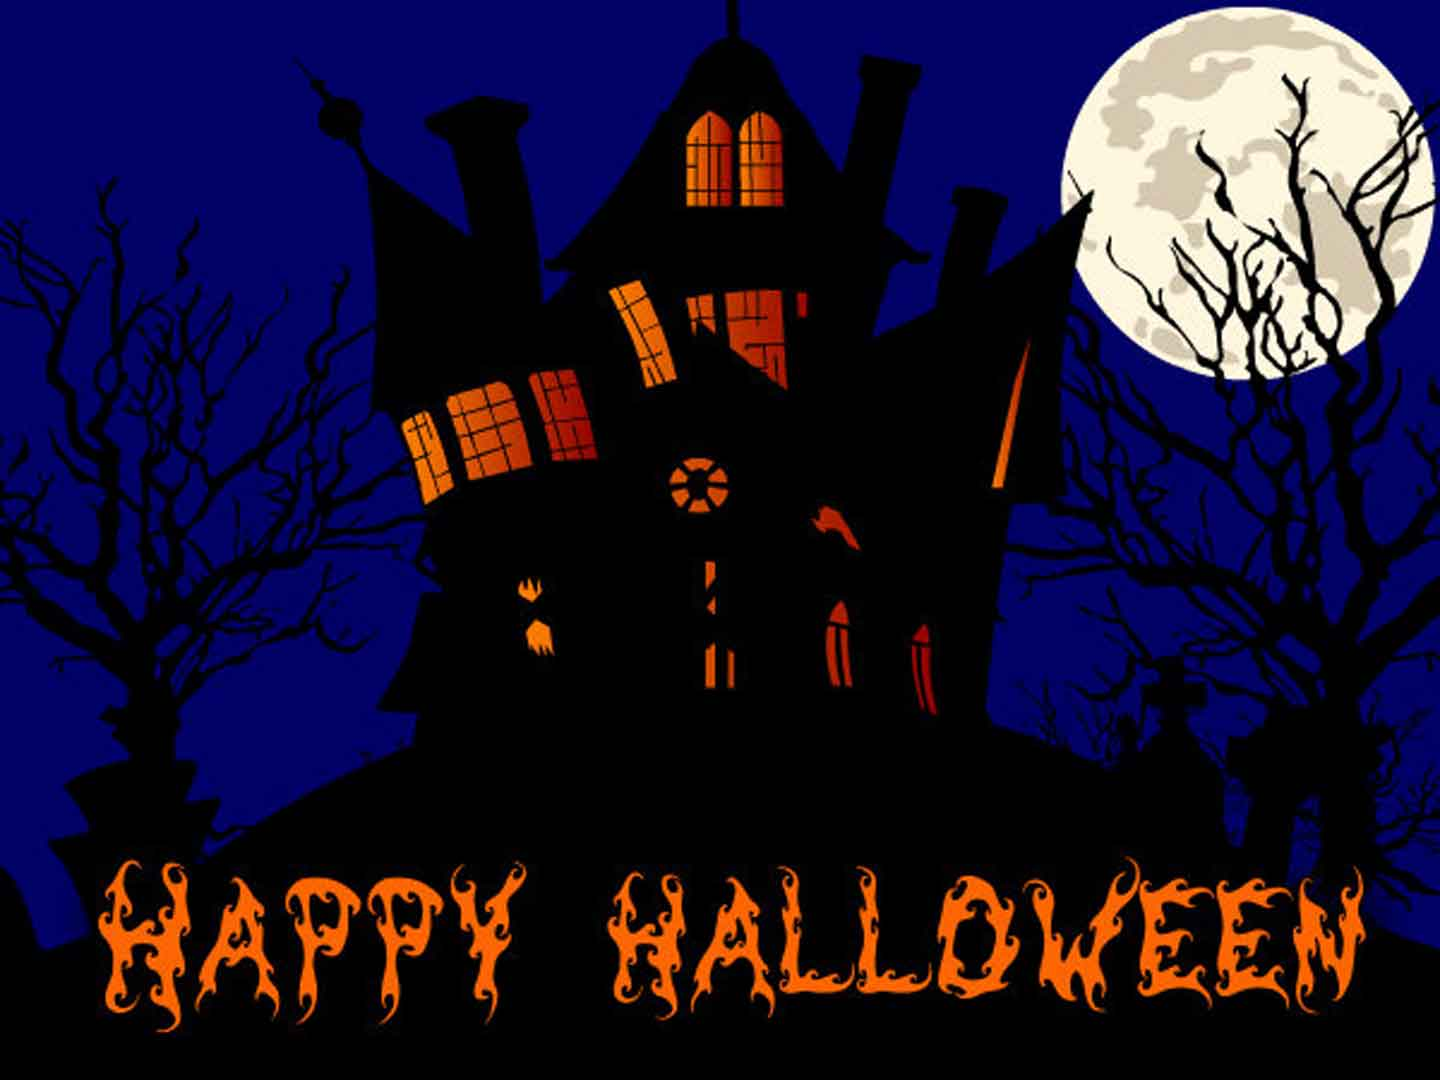 Happy Halloween Backgrounds wallpaper wallpaper hd 1440x1080